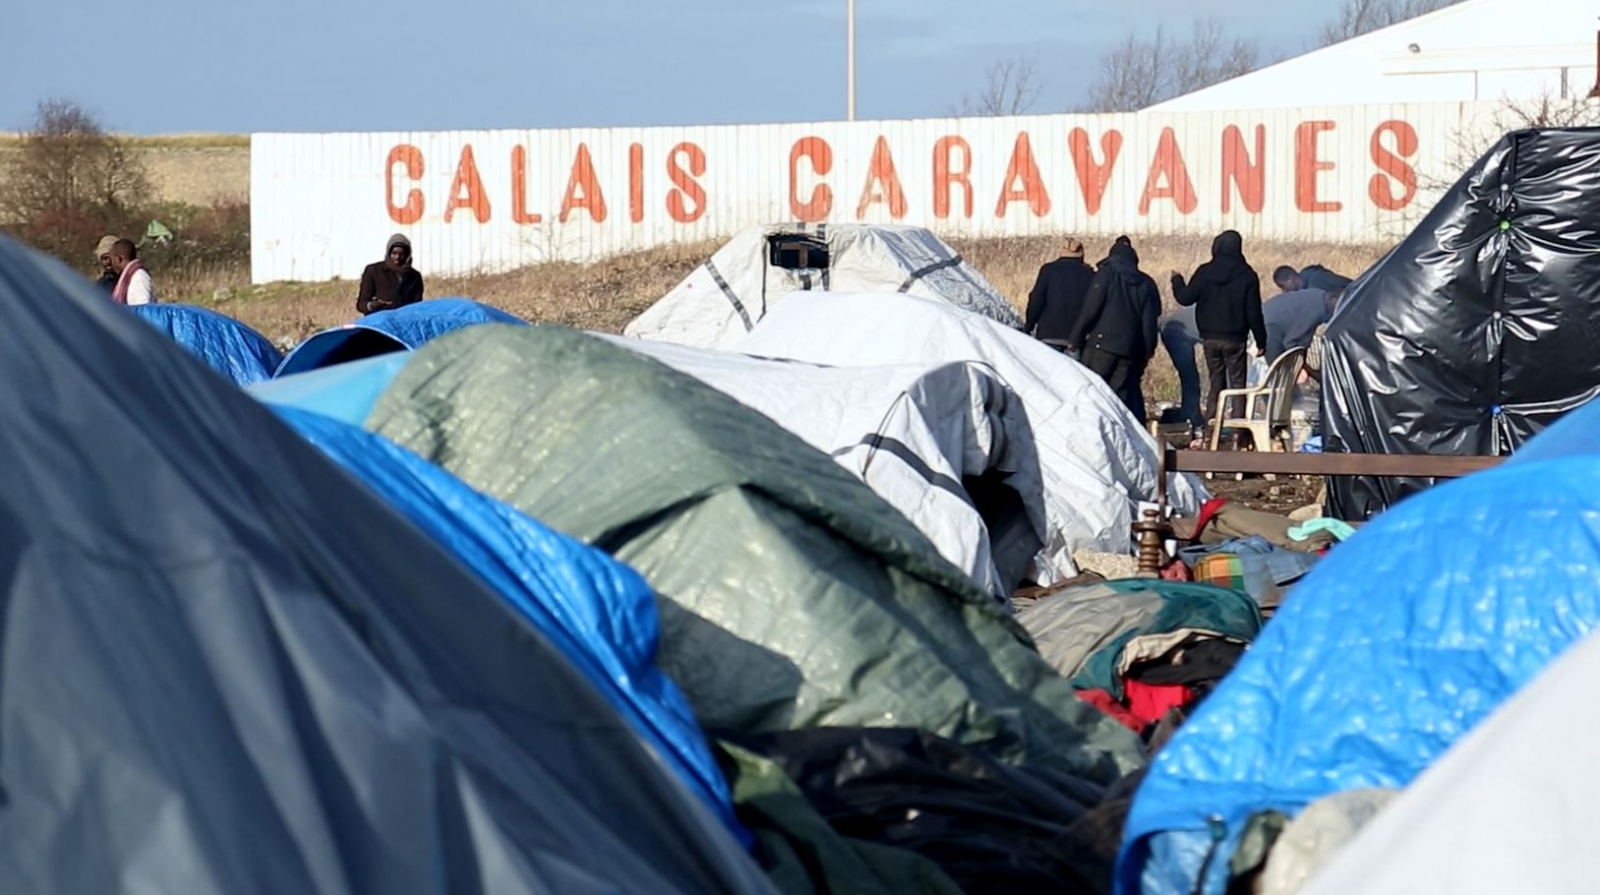 Inside Calais migrant 'Jungles': From peril to police violence